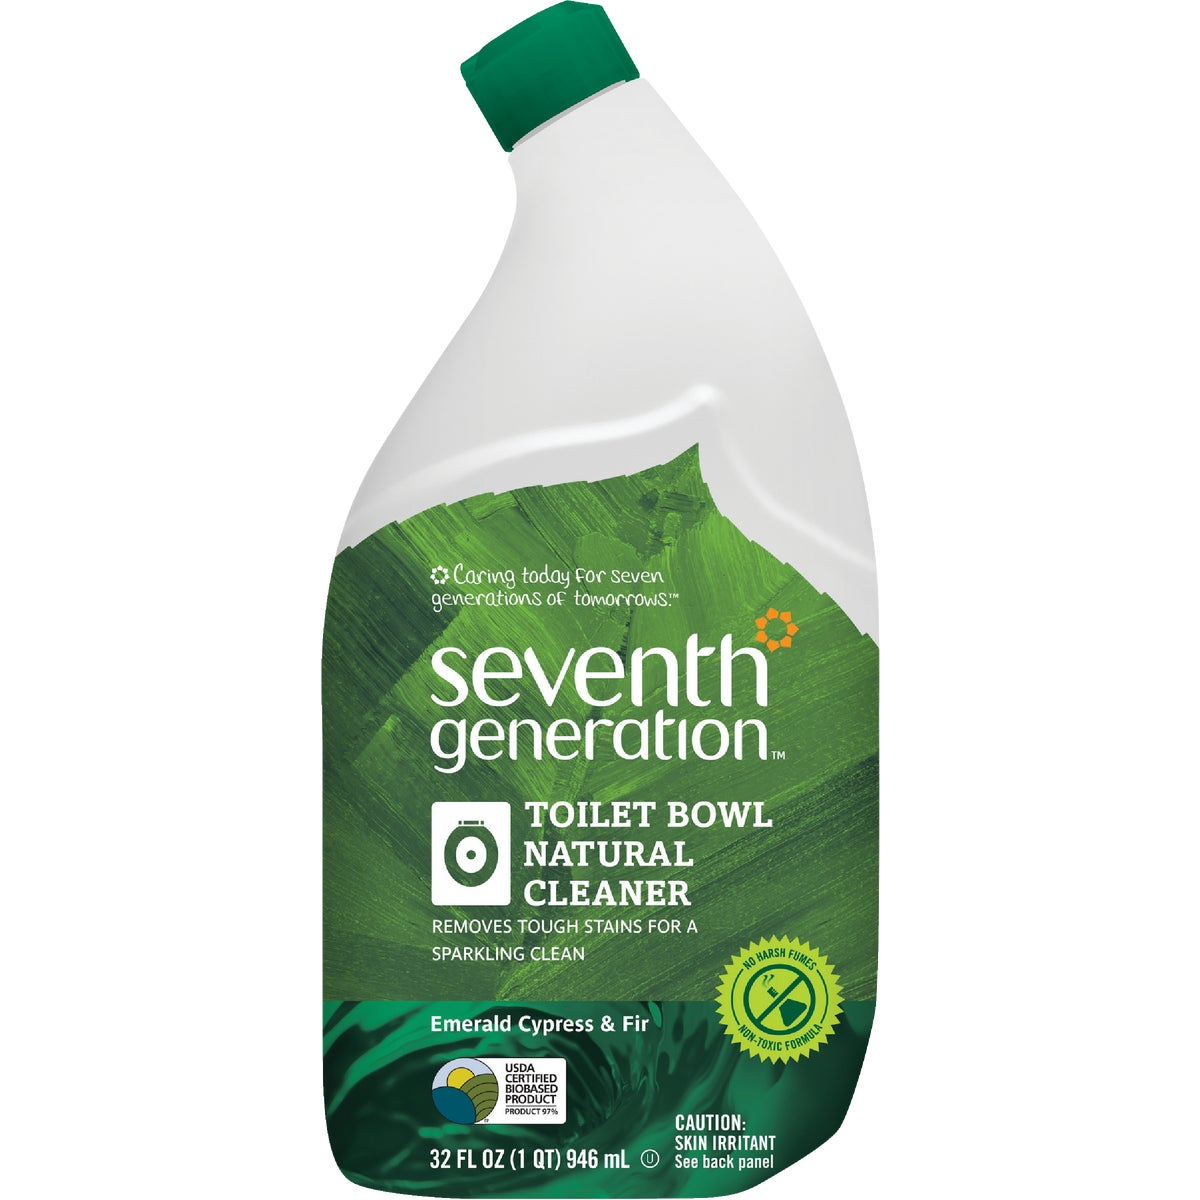 32OZ TOILET BOWL CLEANER - 70732913227043 by Seventh Generation